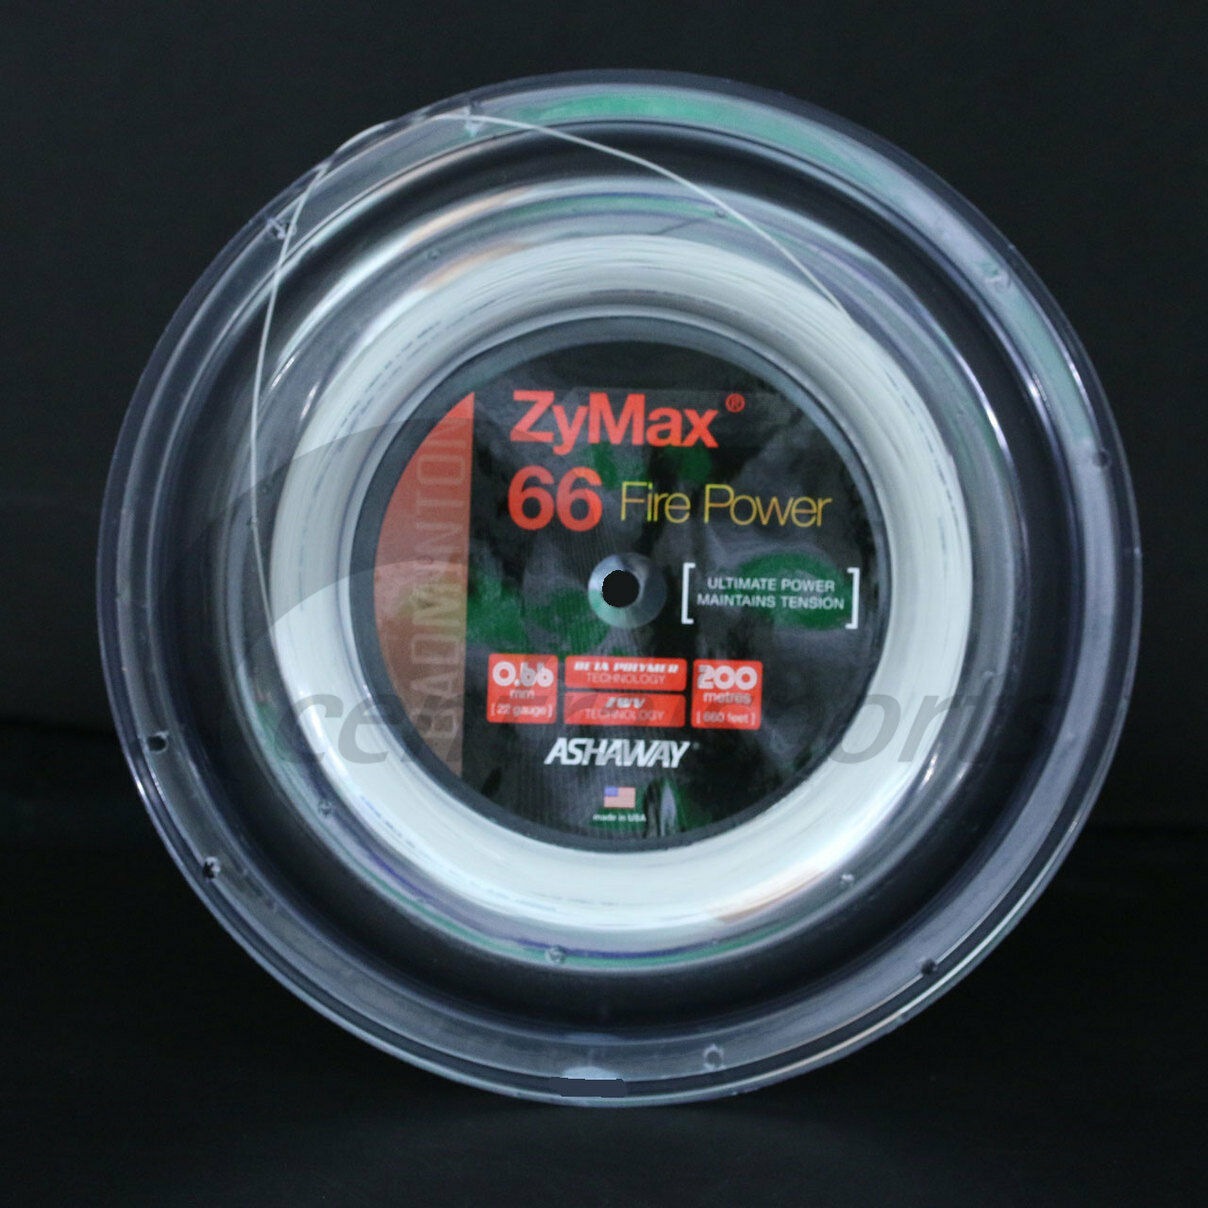 ASHAWAY ZYMAX 66 FIRE POWER 200M COIL BADMINTON RACKET STRING Weiß COLOUR